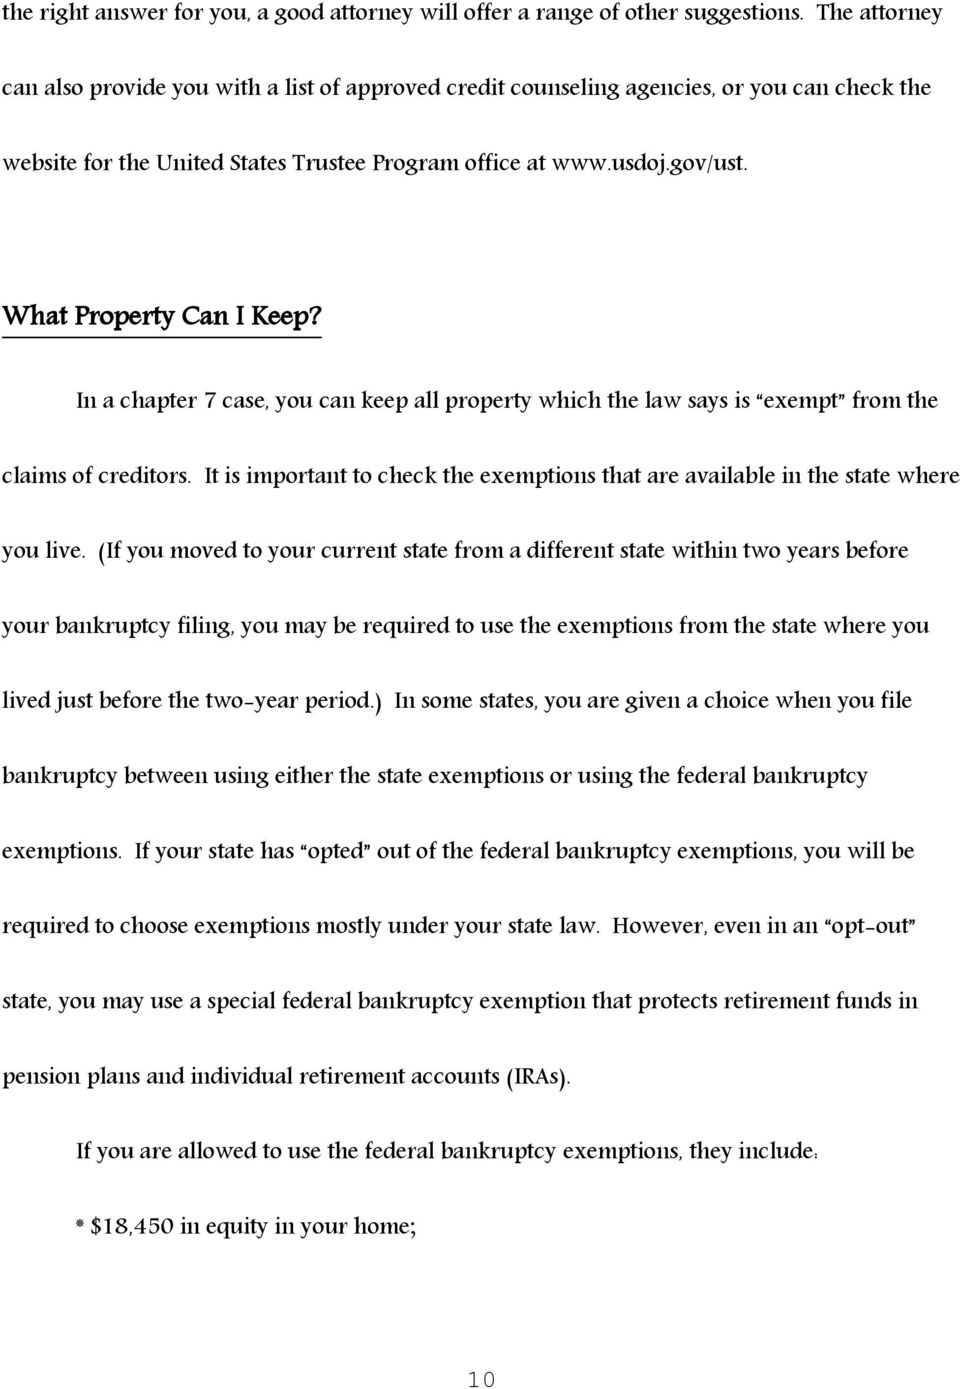 What Property Can I Keep? In a chapter 7 case, you can keep all property which the law says is exempt from the claims of creditors.